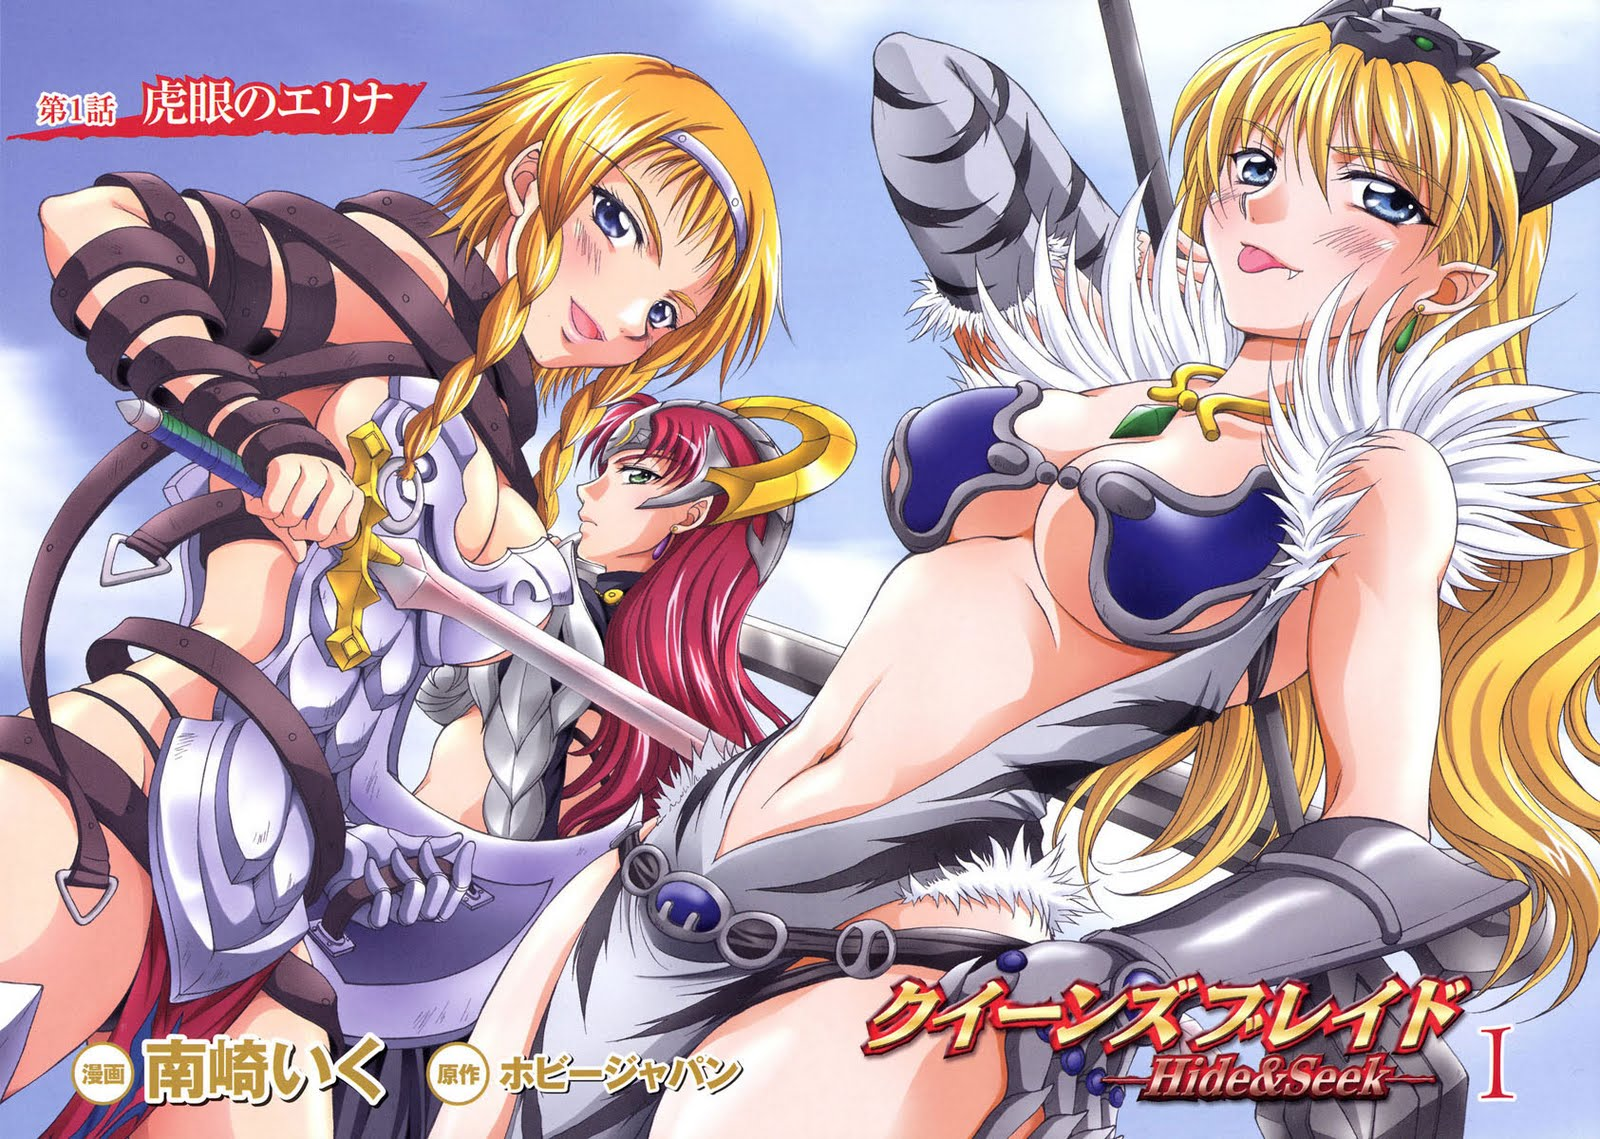 queens blade anime girls cute anime girls 50 JPG | 1600x1200 | 26.5 Mb 50 Hentai Anime Wallpapers [HQ]